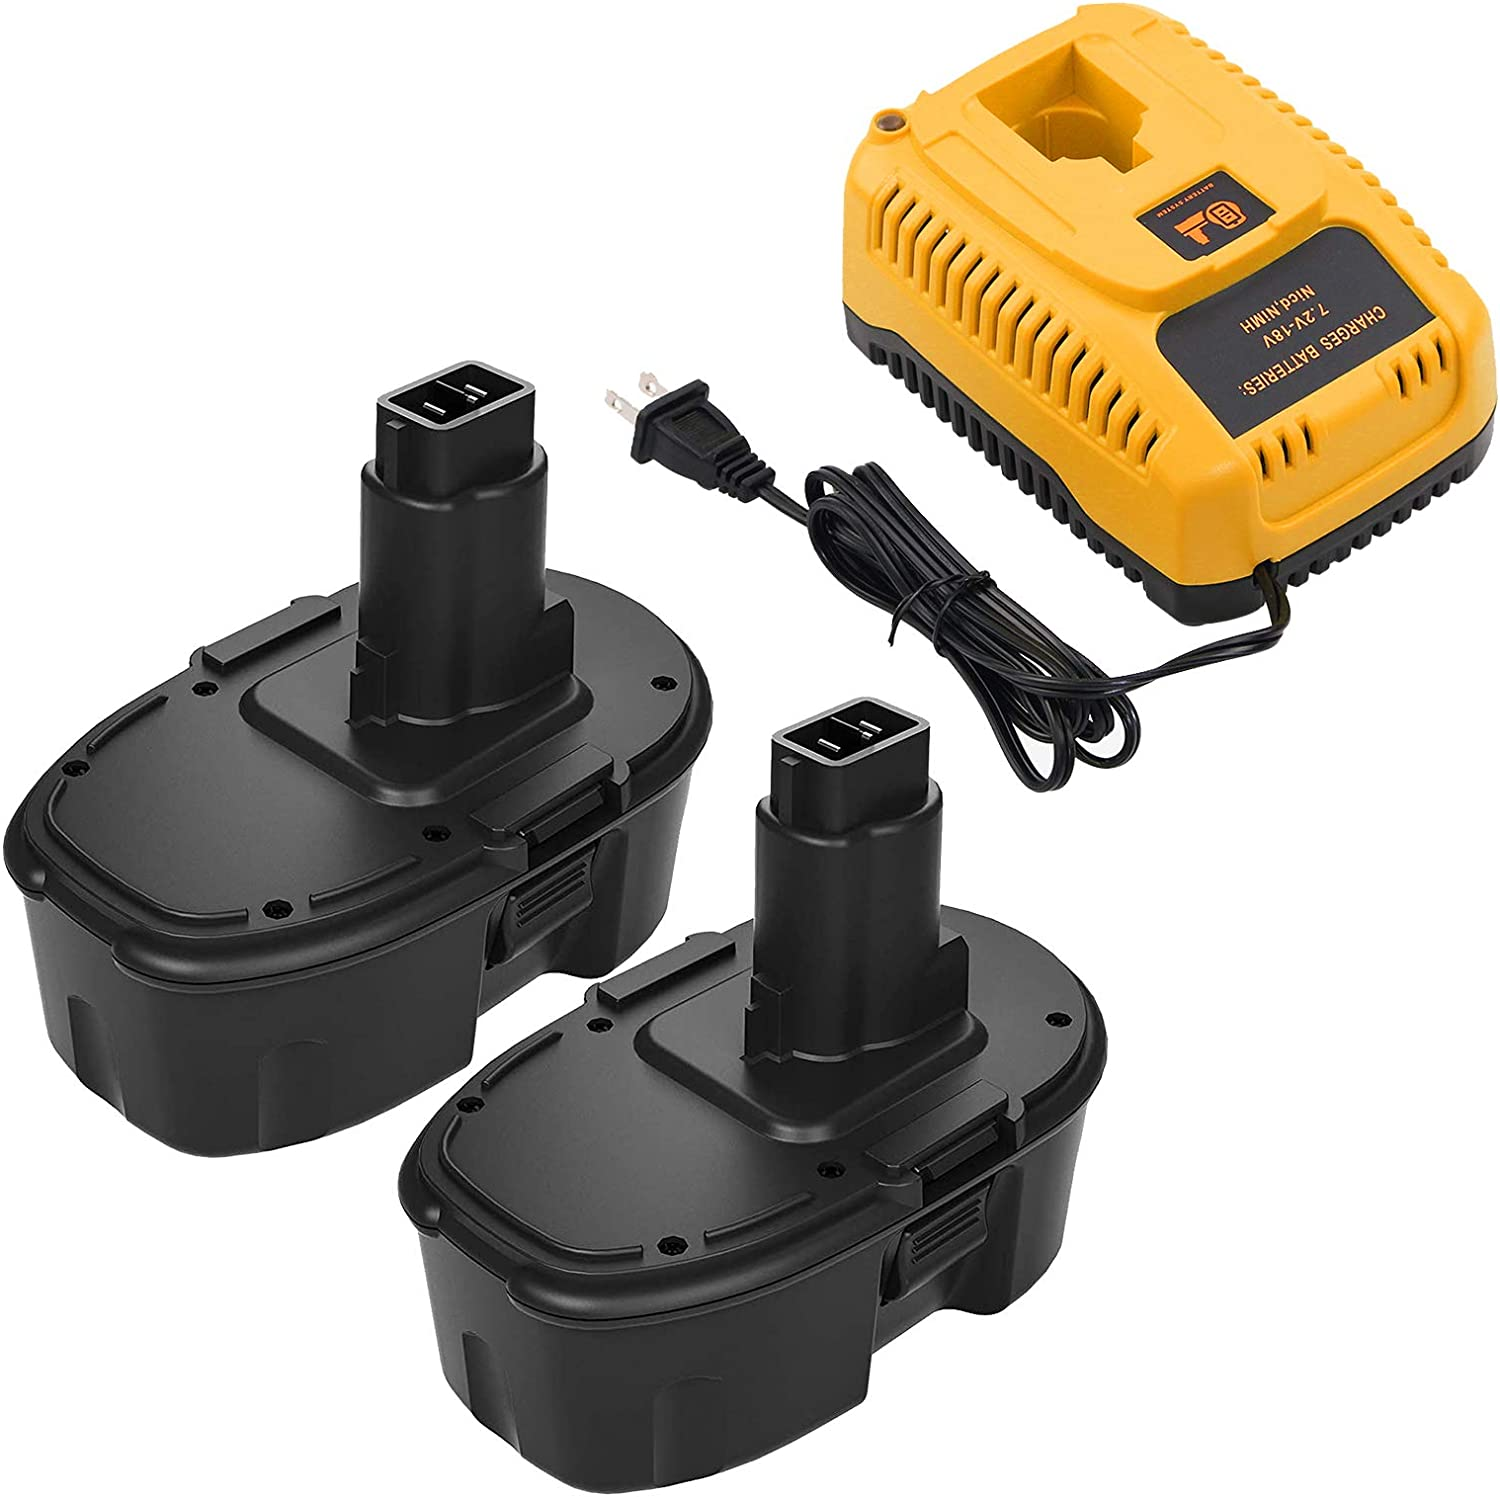 3.0Ah 2-Pack New popularity Replacement Battery Compatible with famous 18V Batt Dewalt